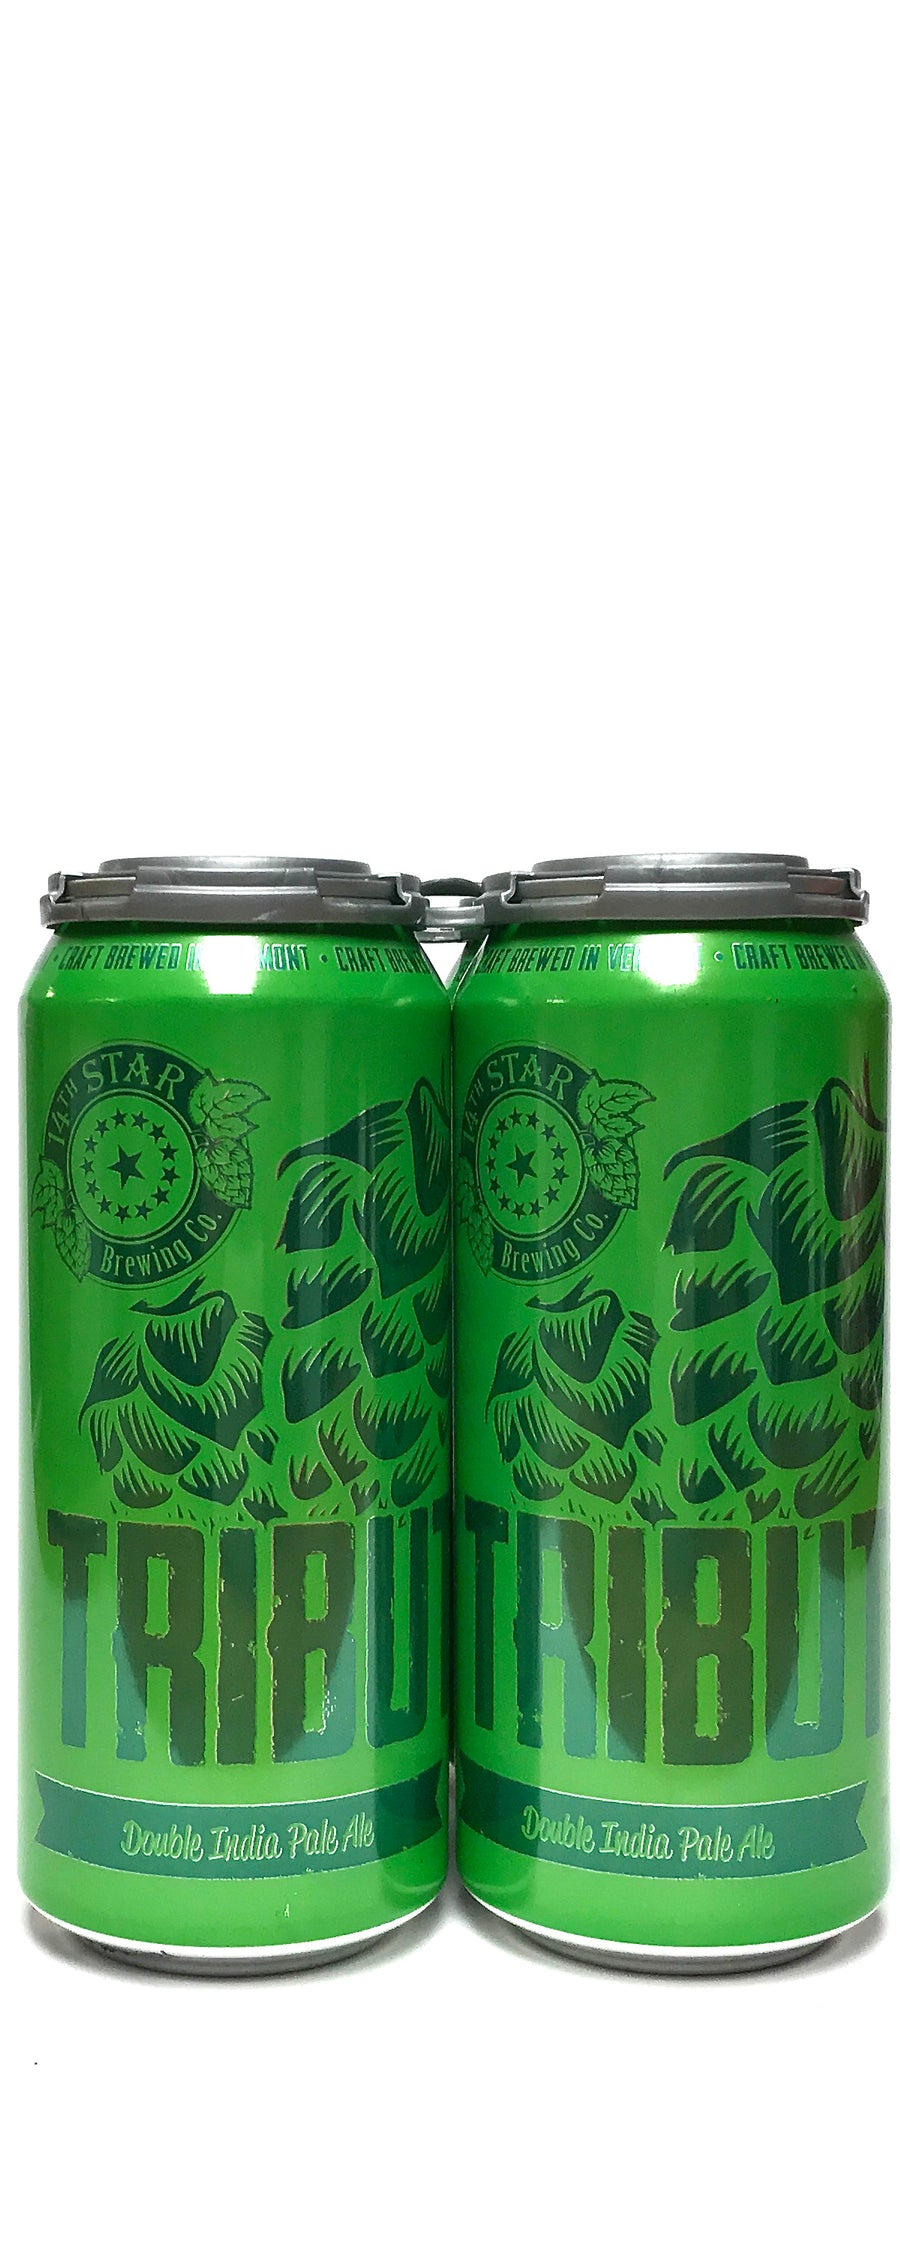 14 Star Tribute Double IPA 16oz Can 4-Pack